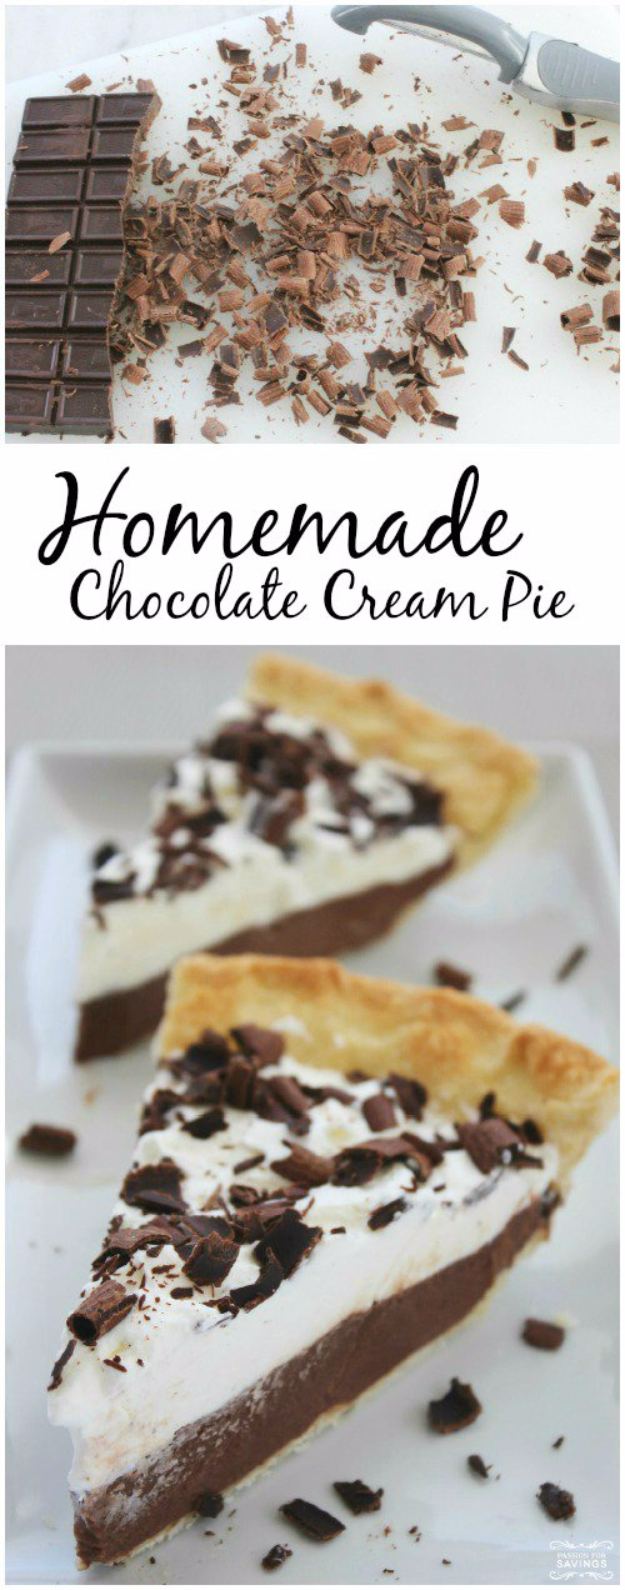 41 Best Homemade Birthday Cake Recipes - Homemade Chocolate Cream Pie - Birthday Cake Recipes From Scratch, Delicious Birthday Cake Recipes To Make, Quick And Easy Birthday Cake Recipes, Awesome Birthday Cake Ideas